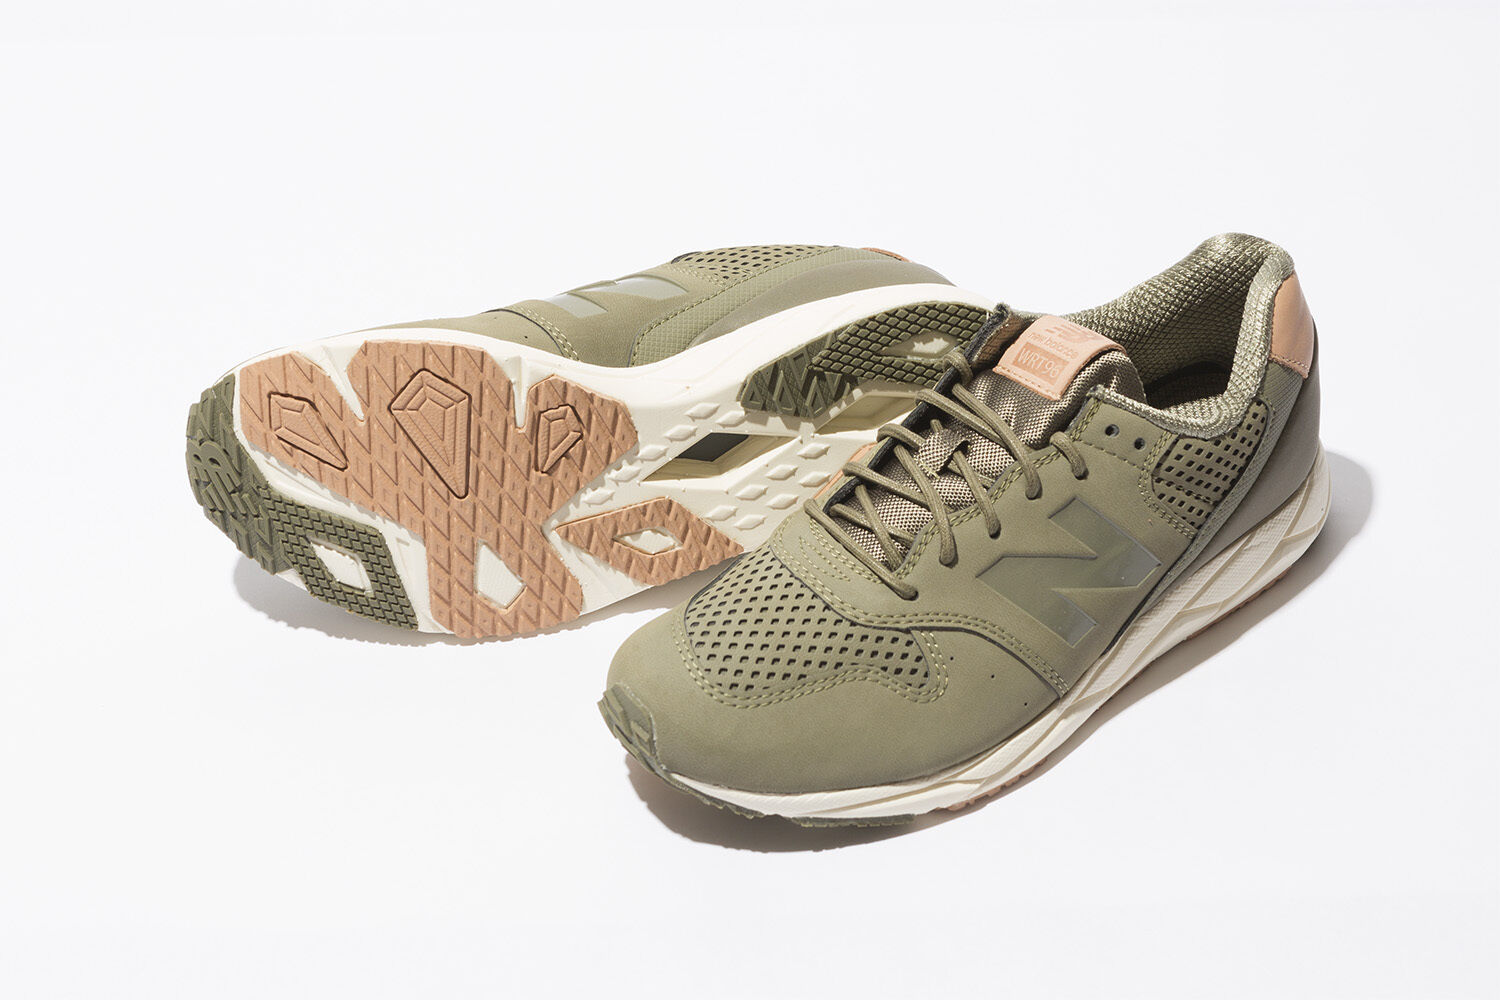 NEW BALANCE WOMEN CLASSICS WRT96TNA ARMY OLIVE GREEN Lifestyles Sneakers 5 - 9